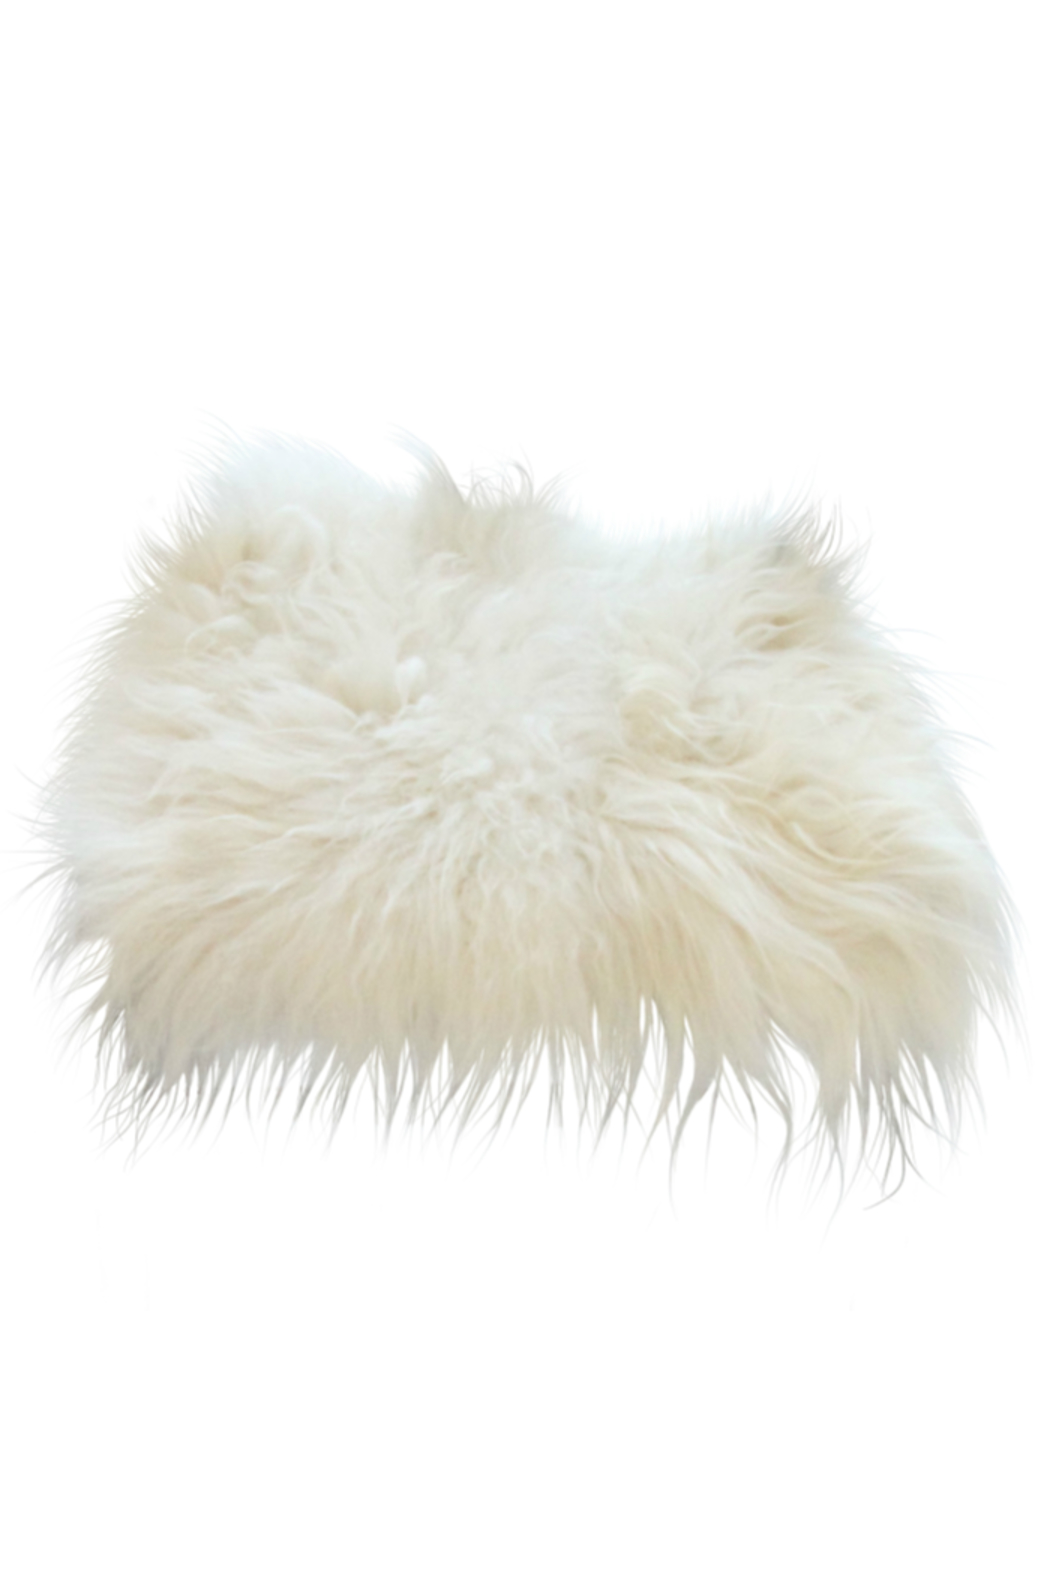 The Birds Nest ICELANDIC SHEEP FUR SEAT COVER - Main Image